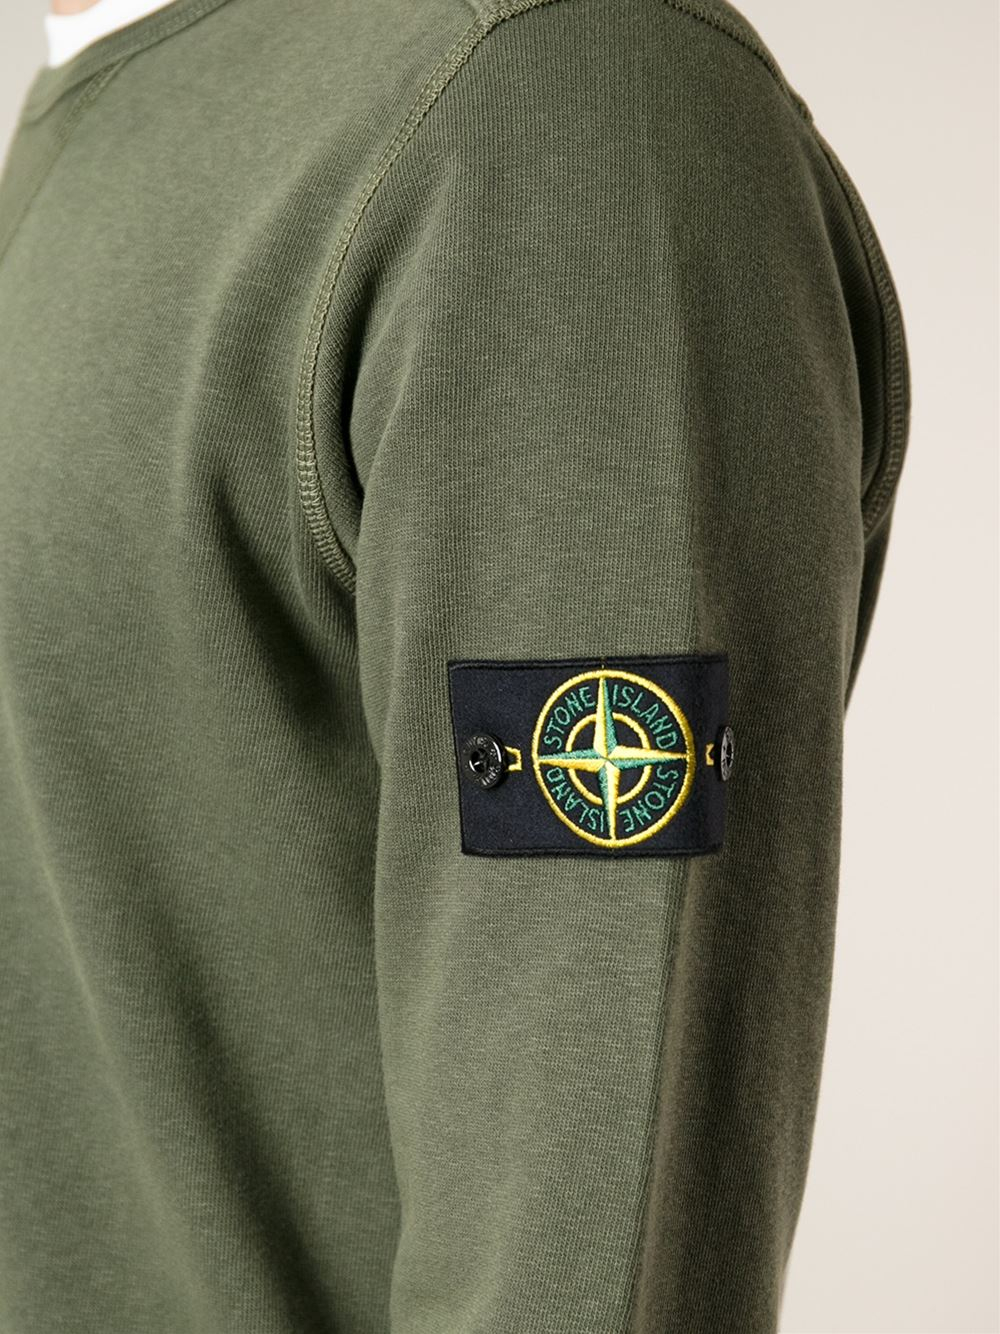 lyst stone island crew neck sweatshirt in green for men. Black Bedroom Furniture Sets. Home Design Ideas